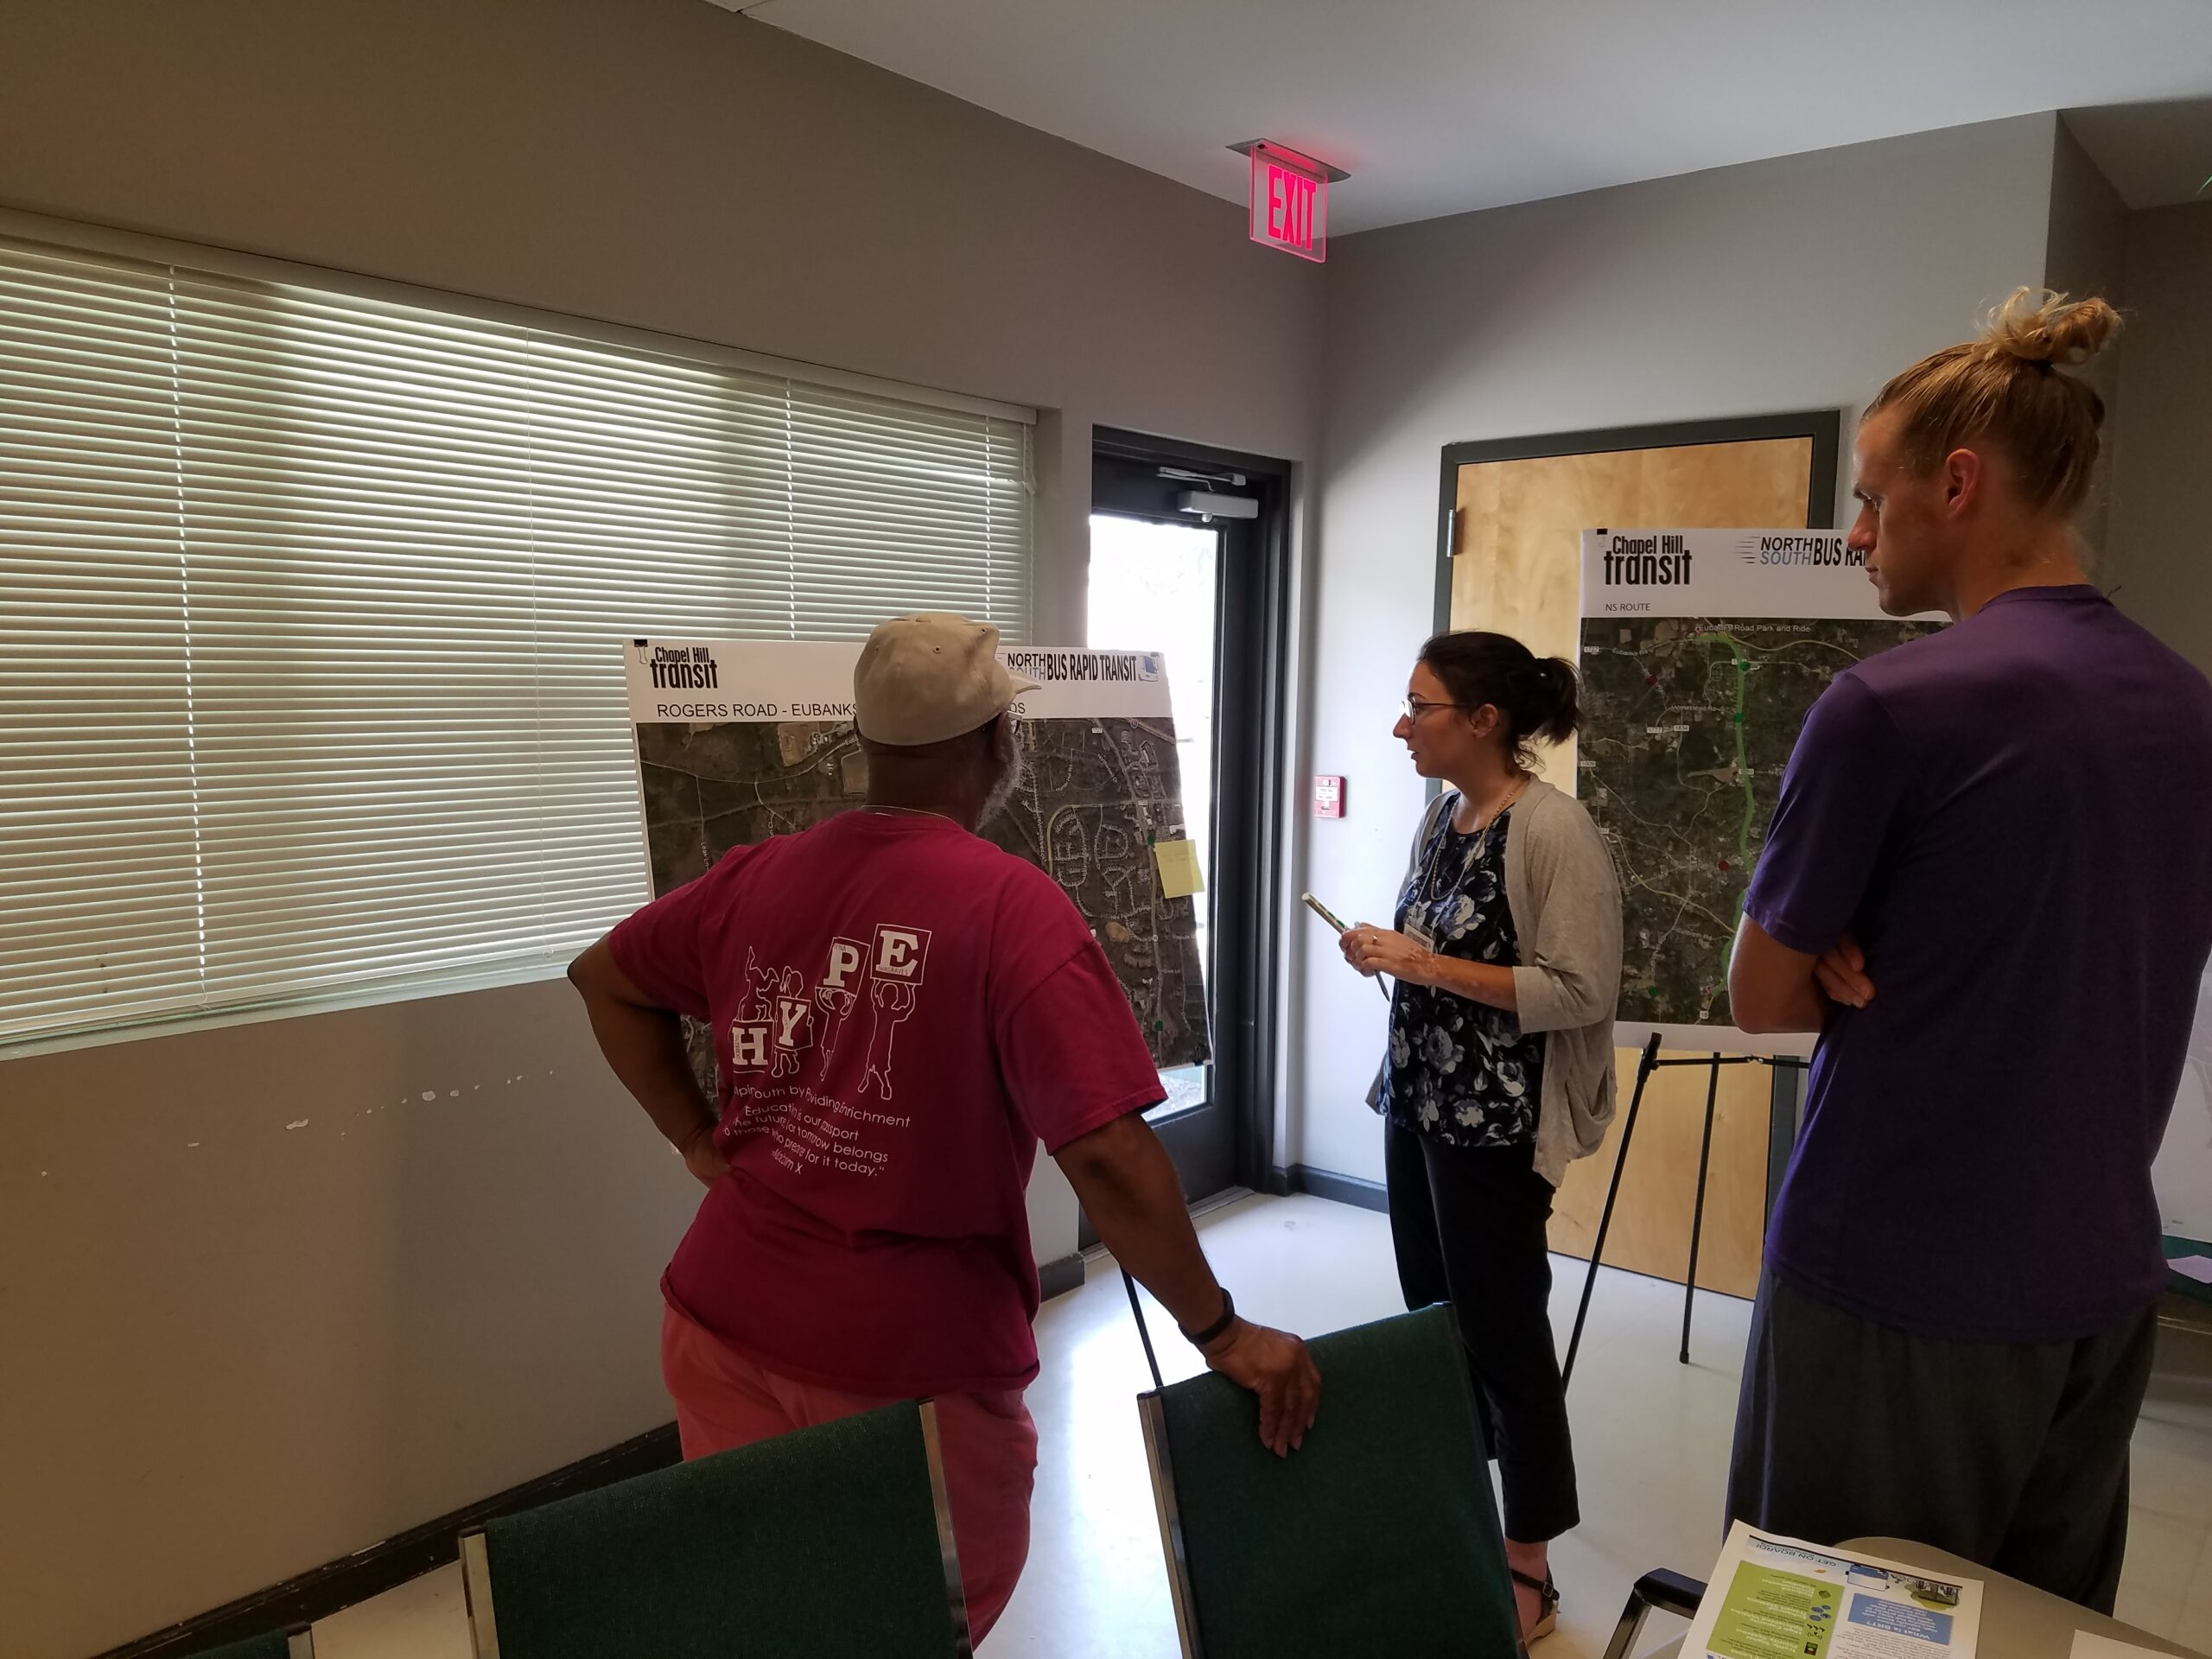 Members of the Rogers-Eubanks Neighborhood reviewing project materials at a project meeting.